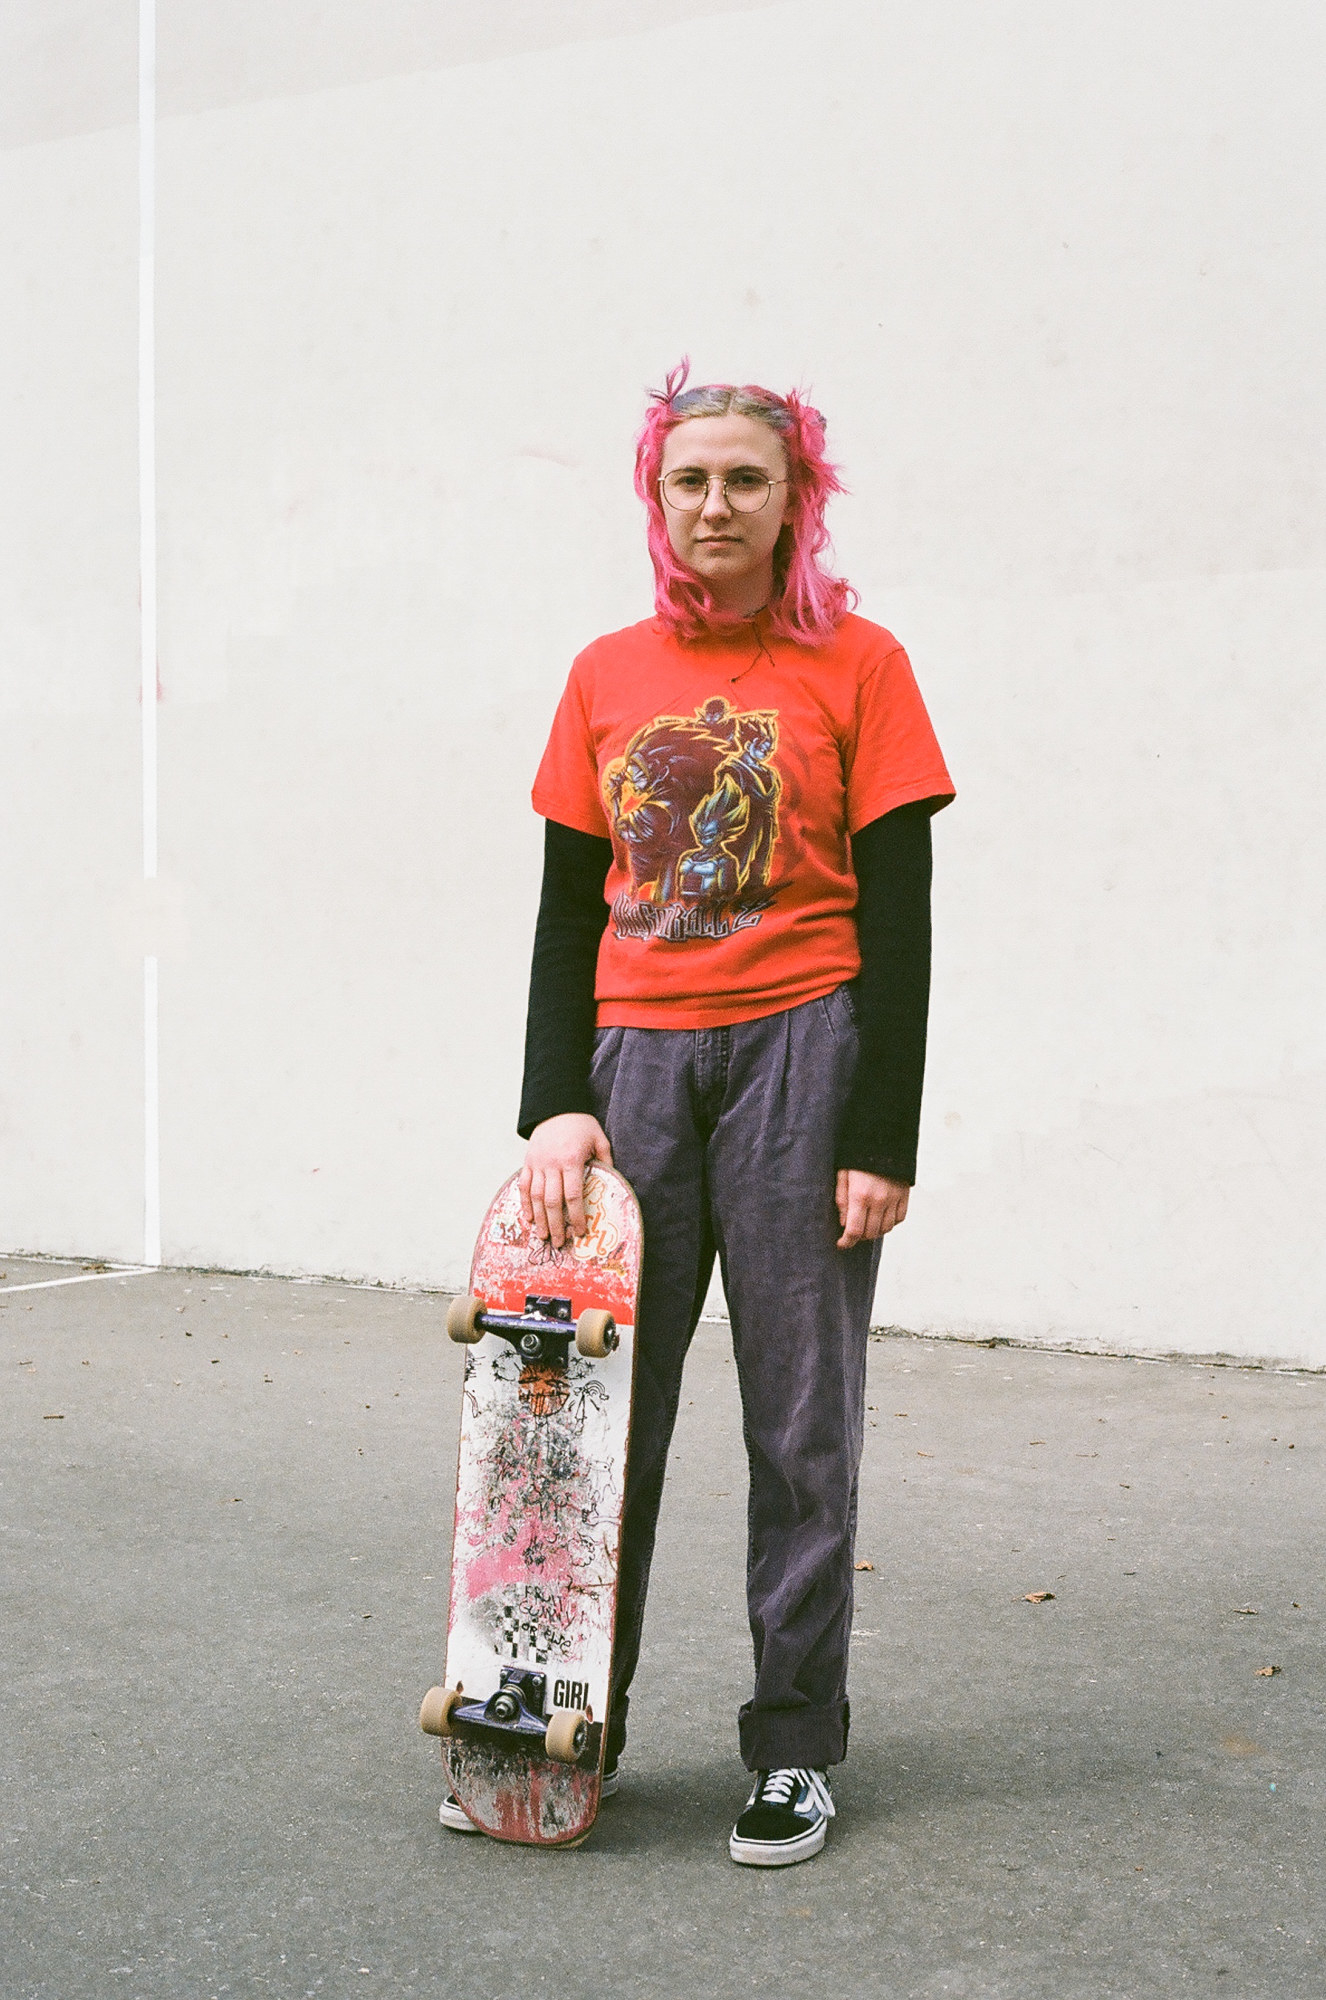 A woman with pink hair stands with a pink skateboard